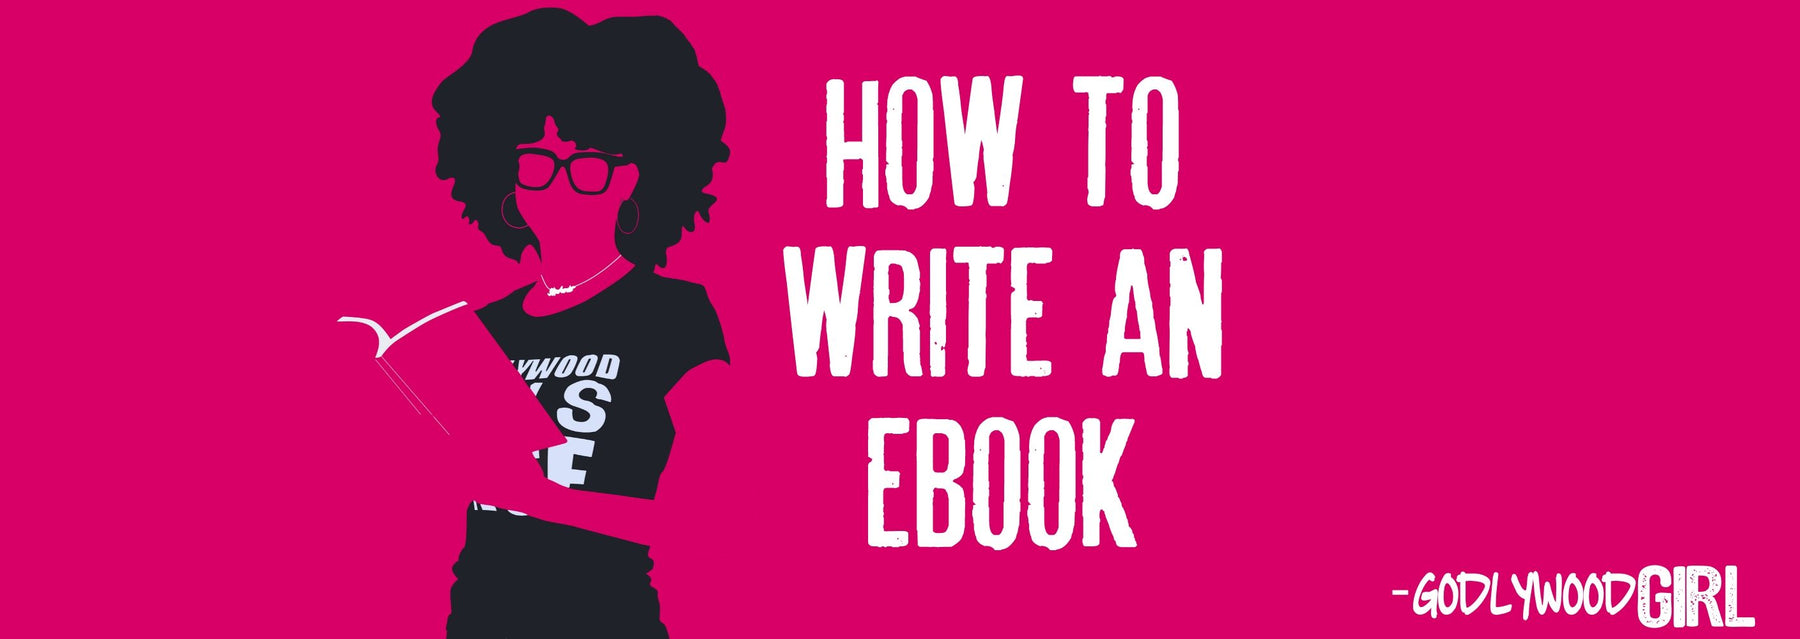 HOW TO WRITE AN EBOOK (EBook Series For Christian Entrepreneurs) || HOW TO